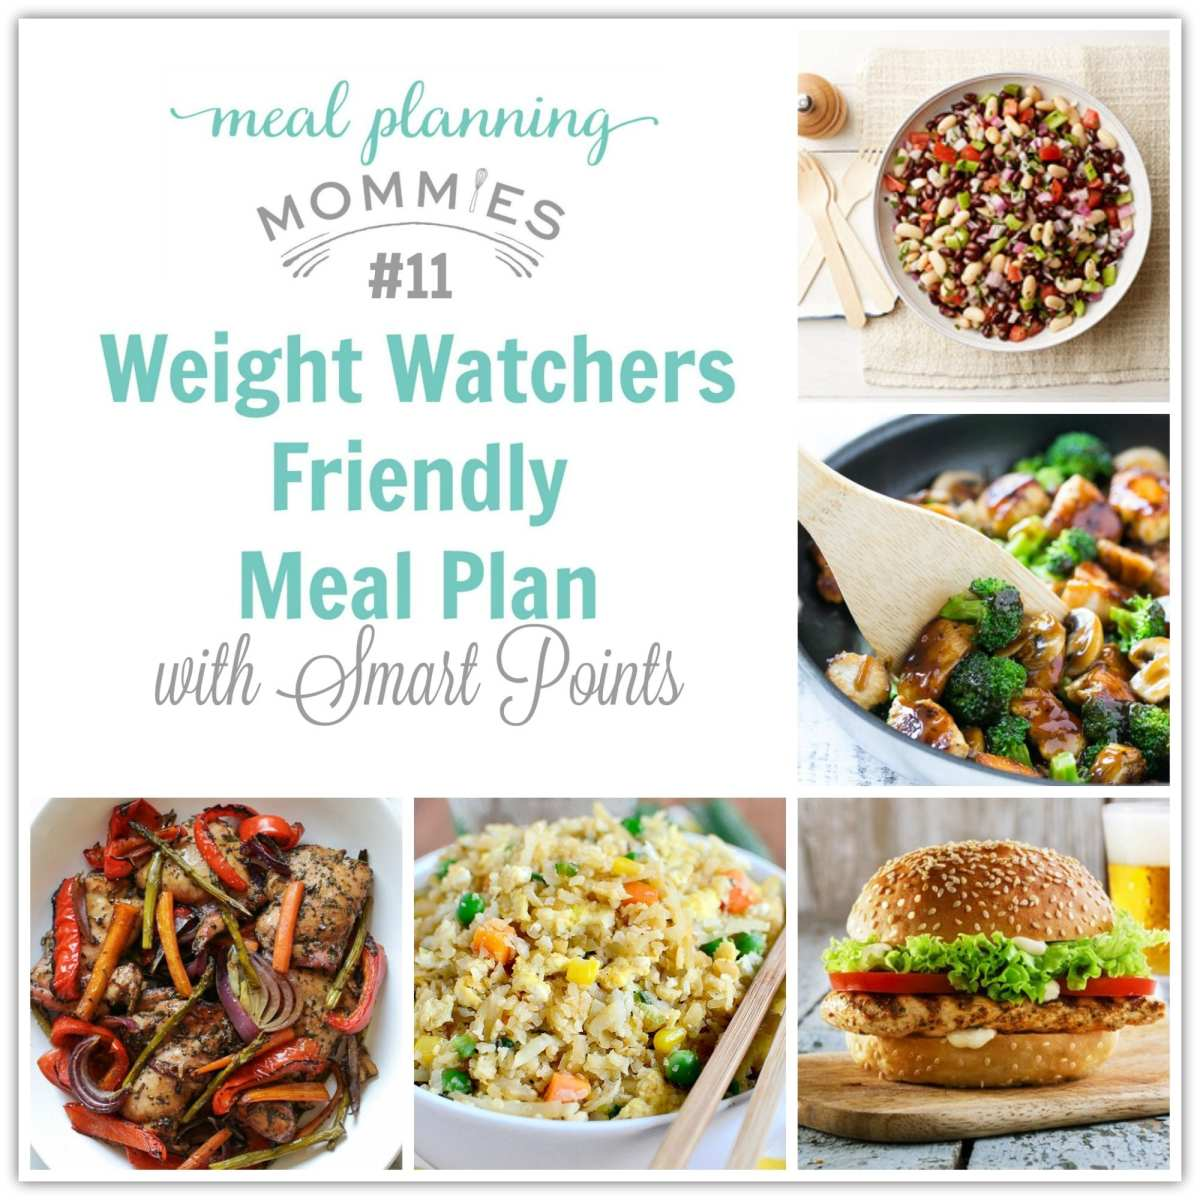 Weight Watcher Meal Plan with Smart Points #11